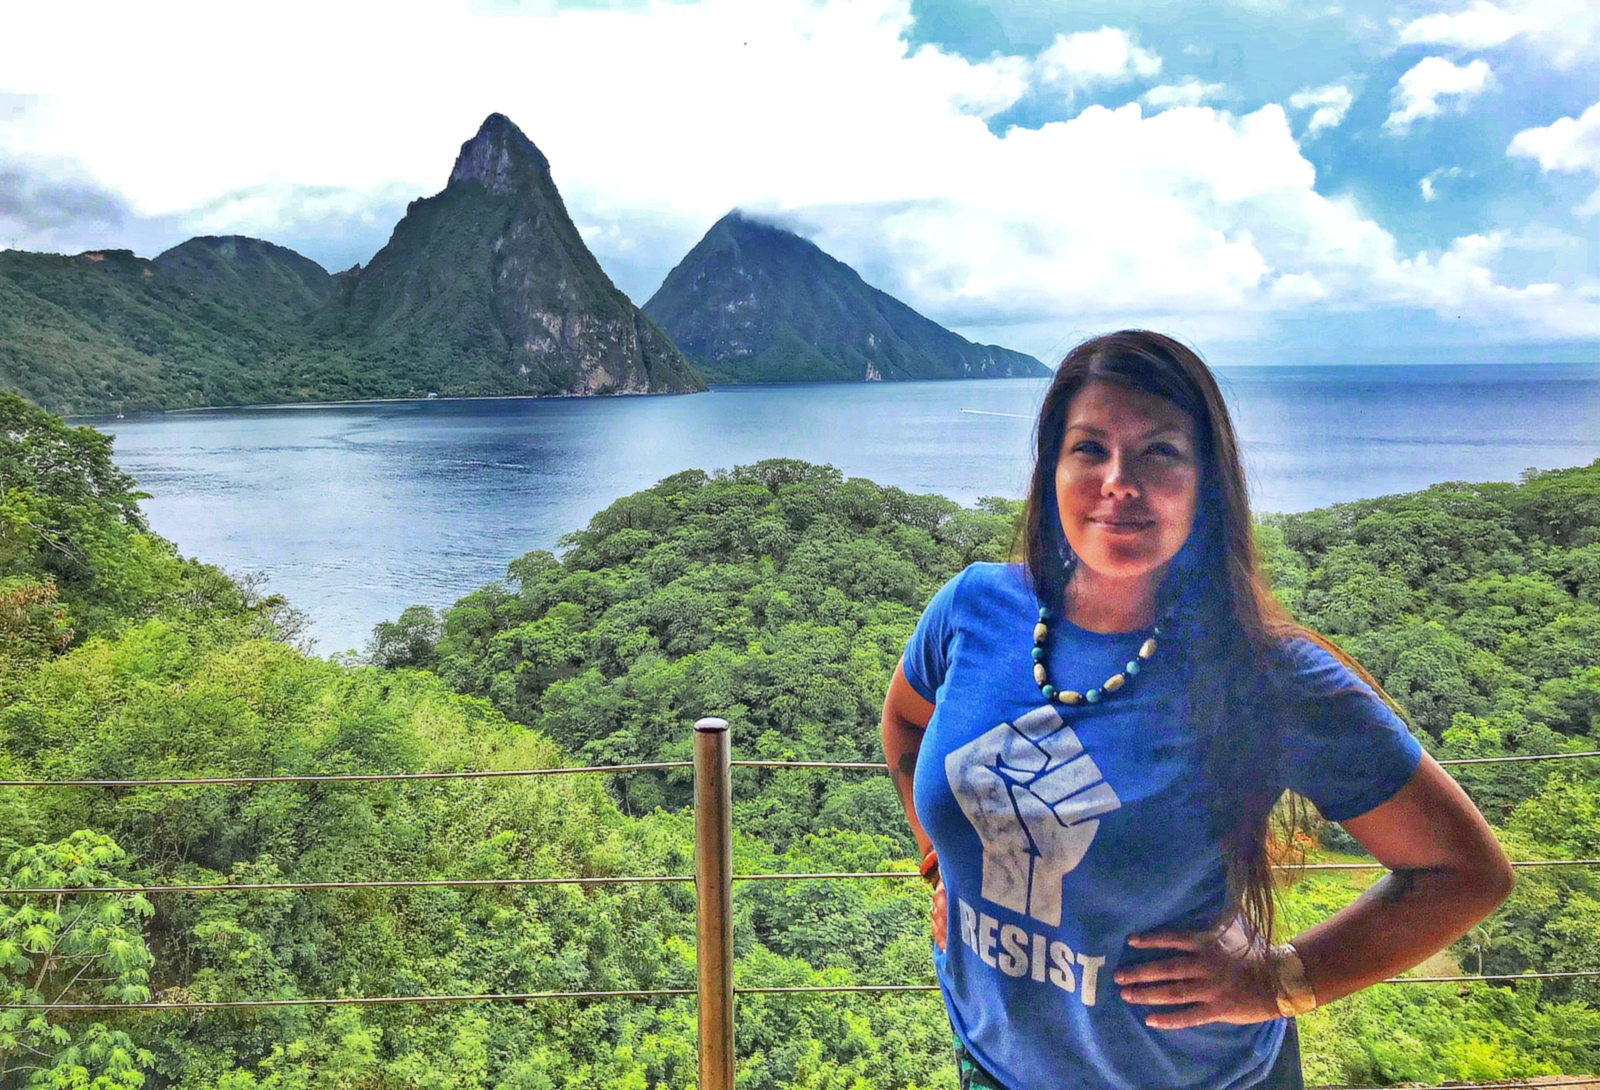 Ana Saldana freelance music mixer and artiste in front of Saint Lucia's iconic Pitons world heritage site near Jade Mountain Resort